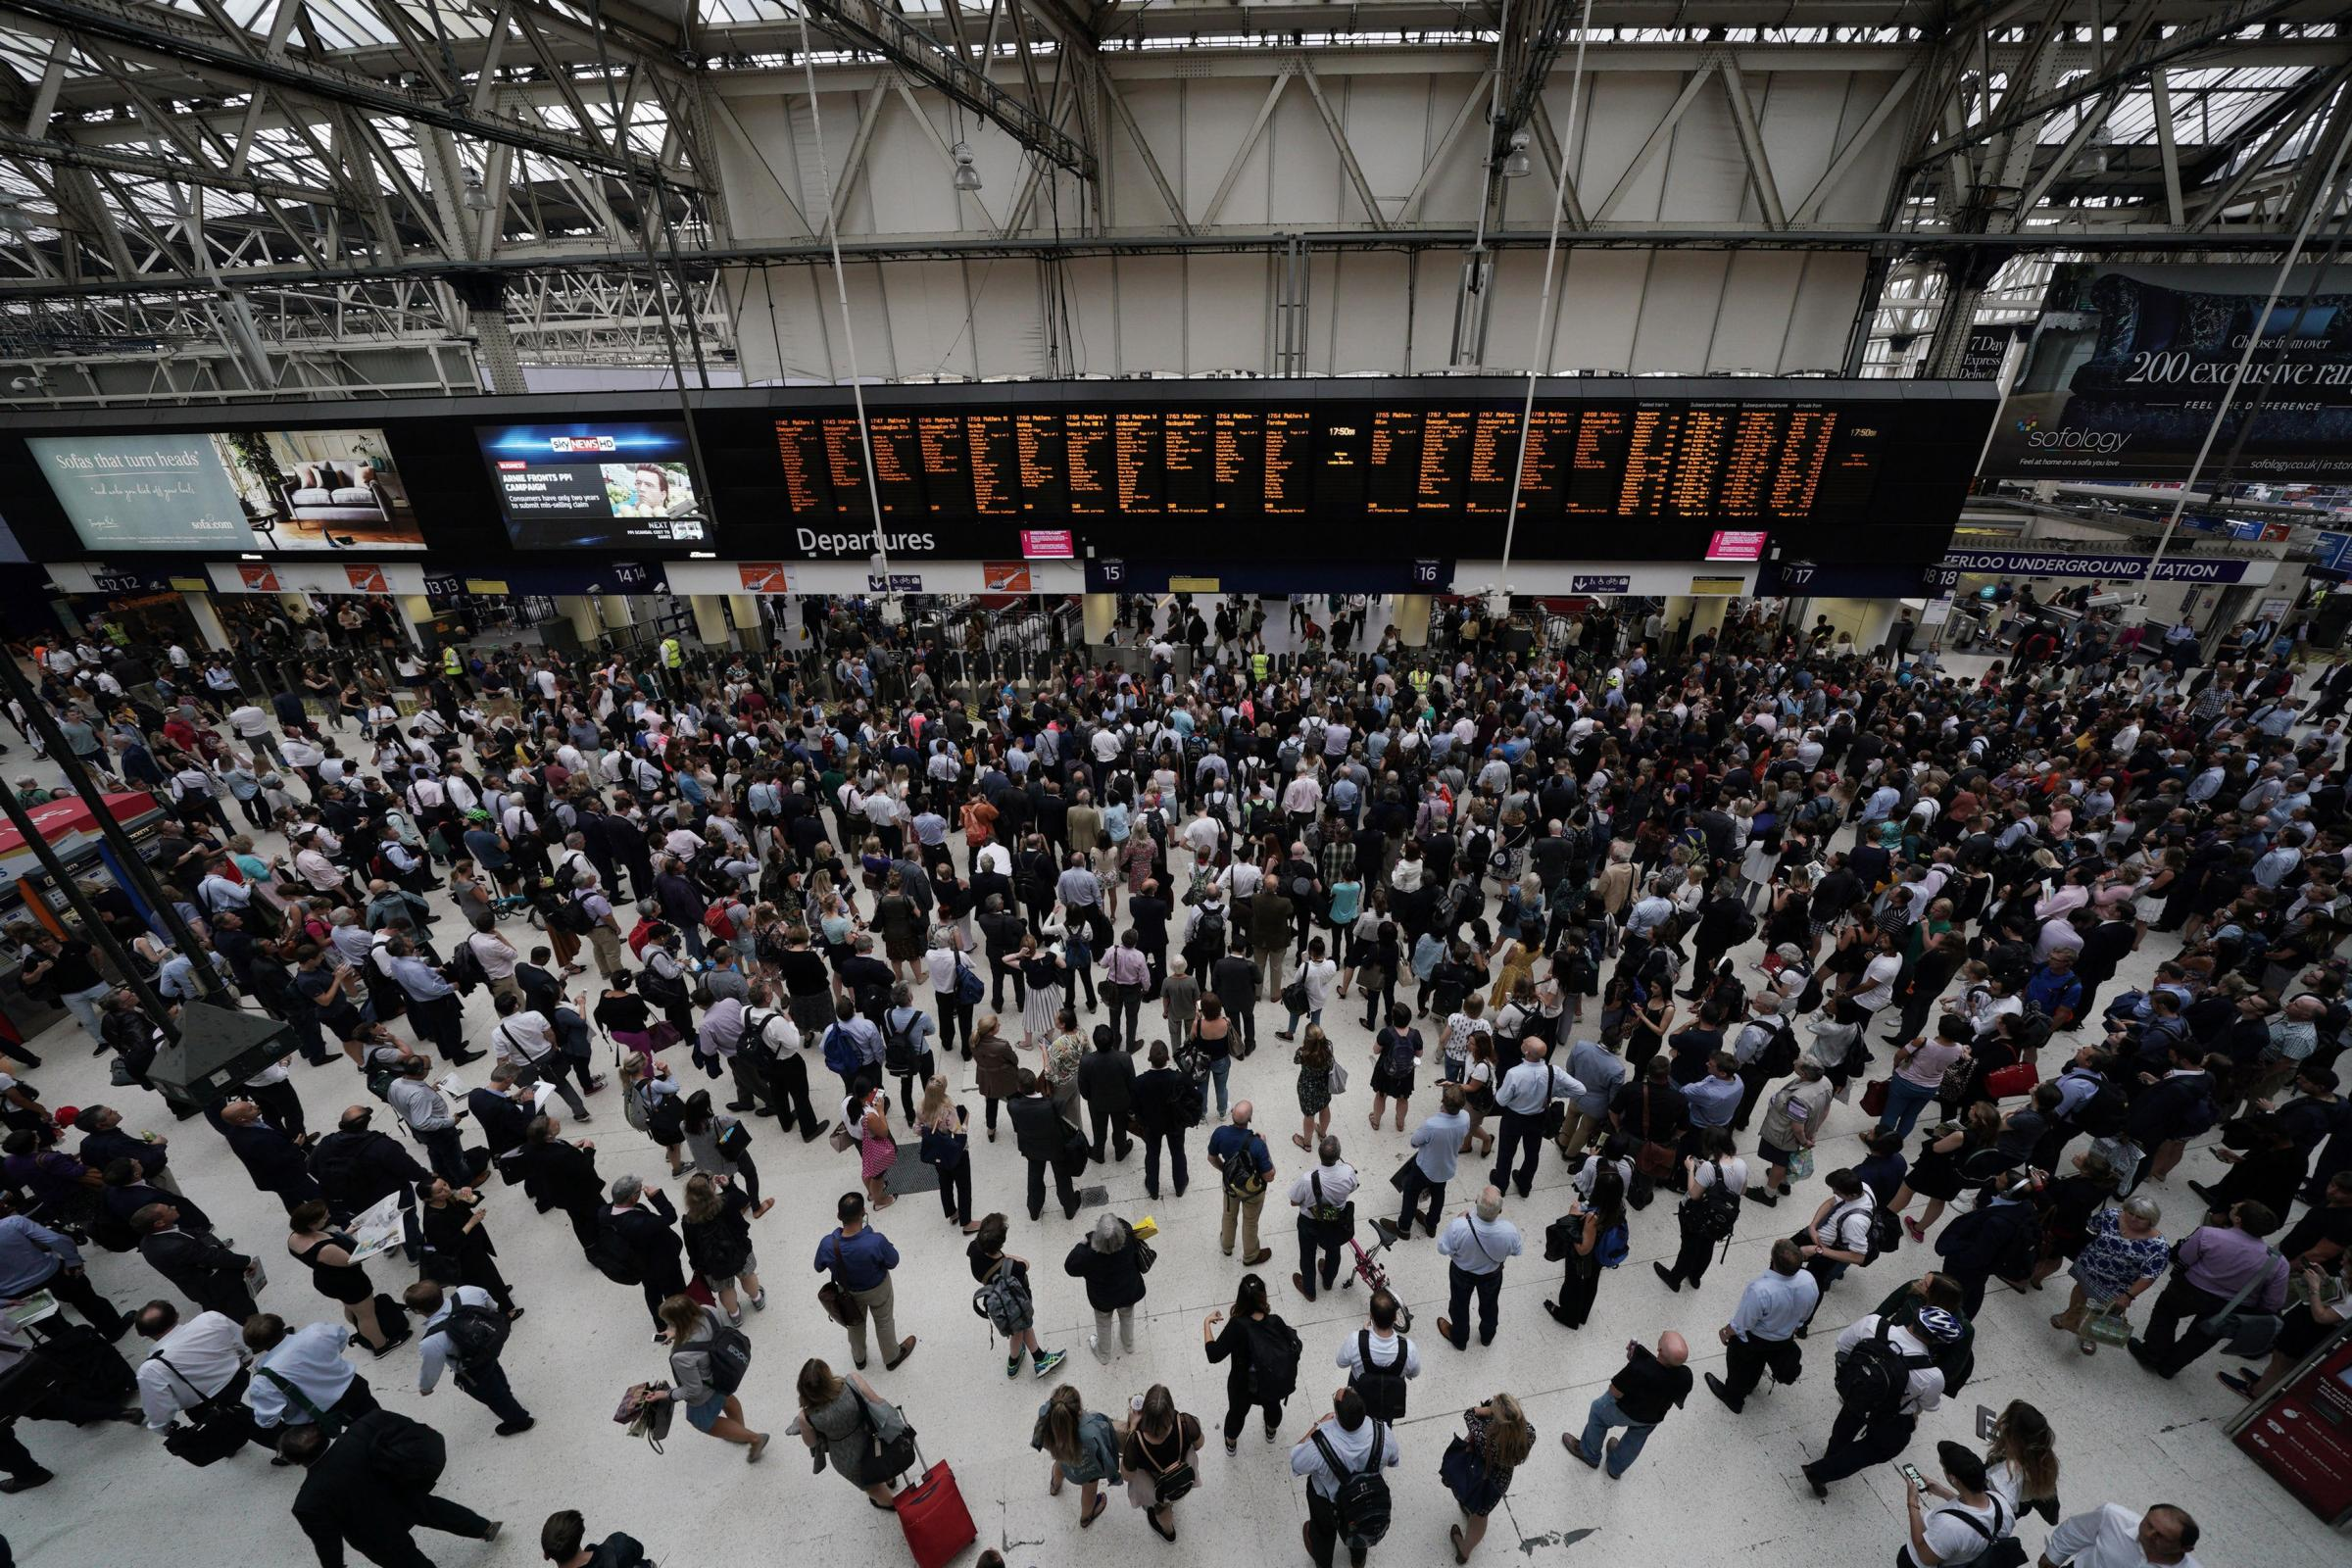 Commuting to and from work taking longer, TUC study suggests